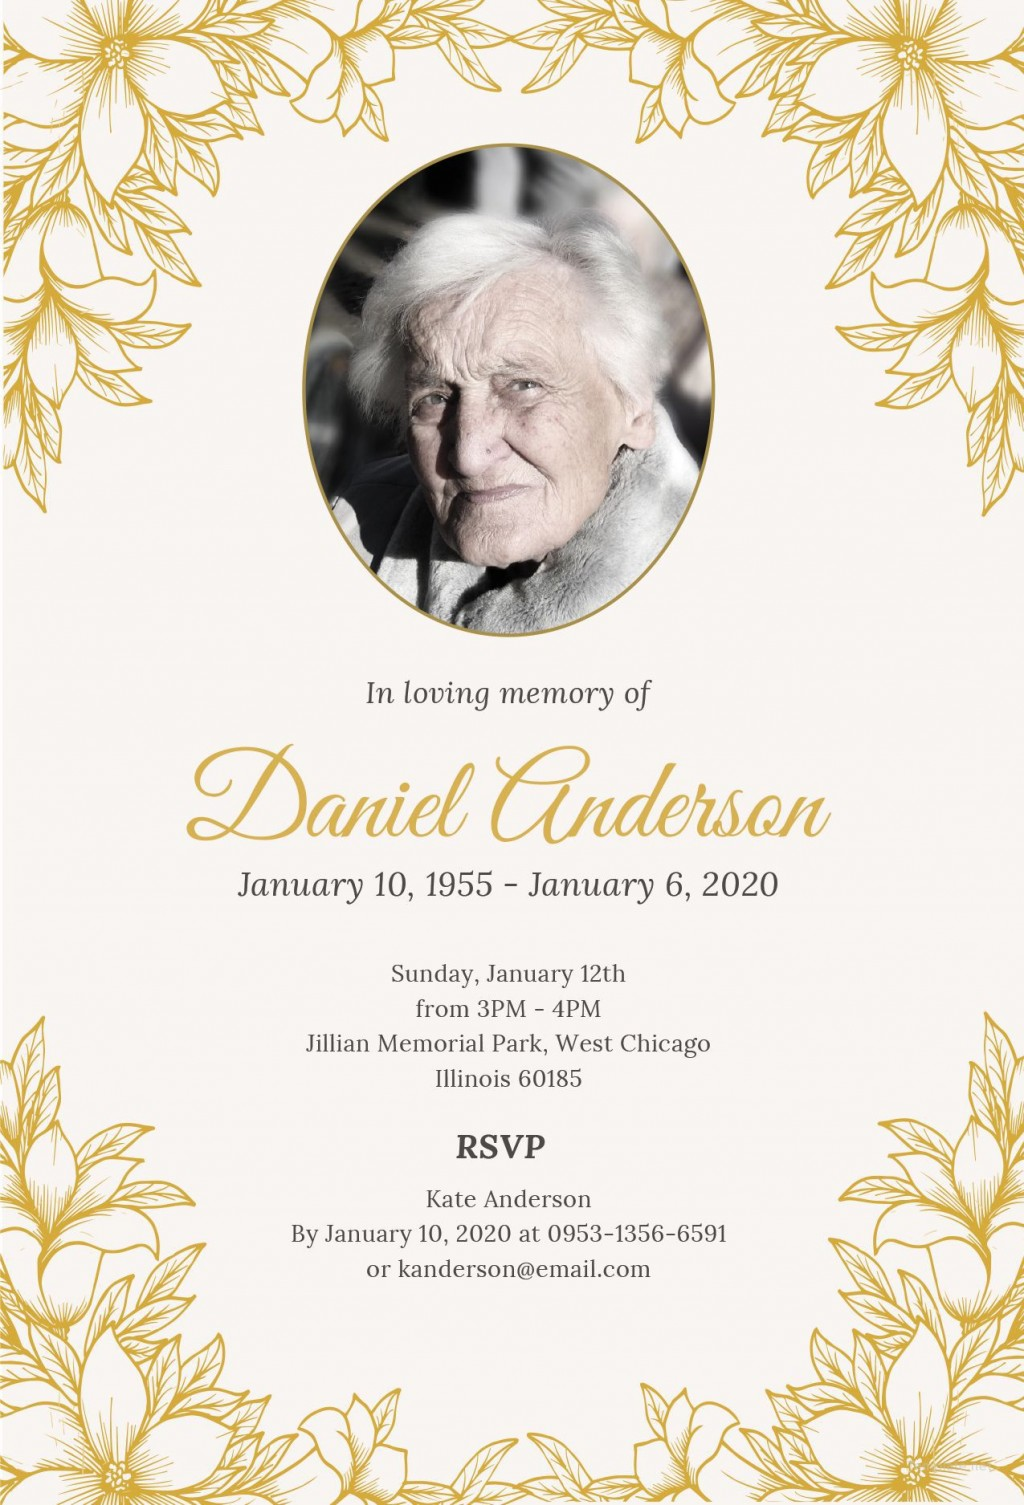 012 Formidable Funeral Invitation Template Free Inspiration  Memorial Service Card ReceptionLarge